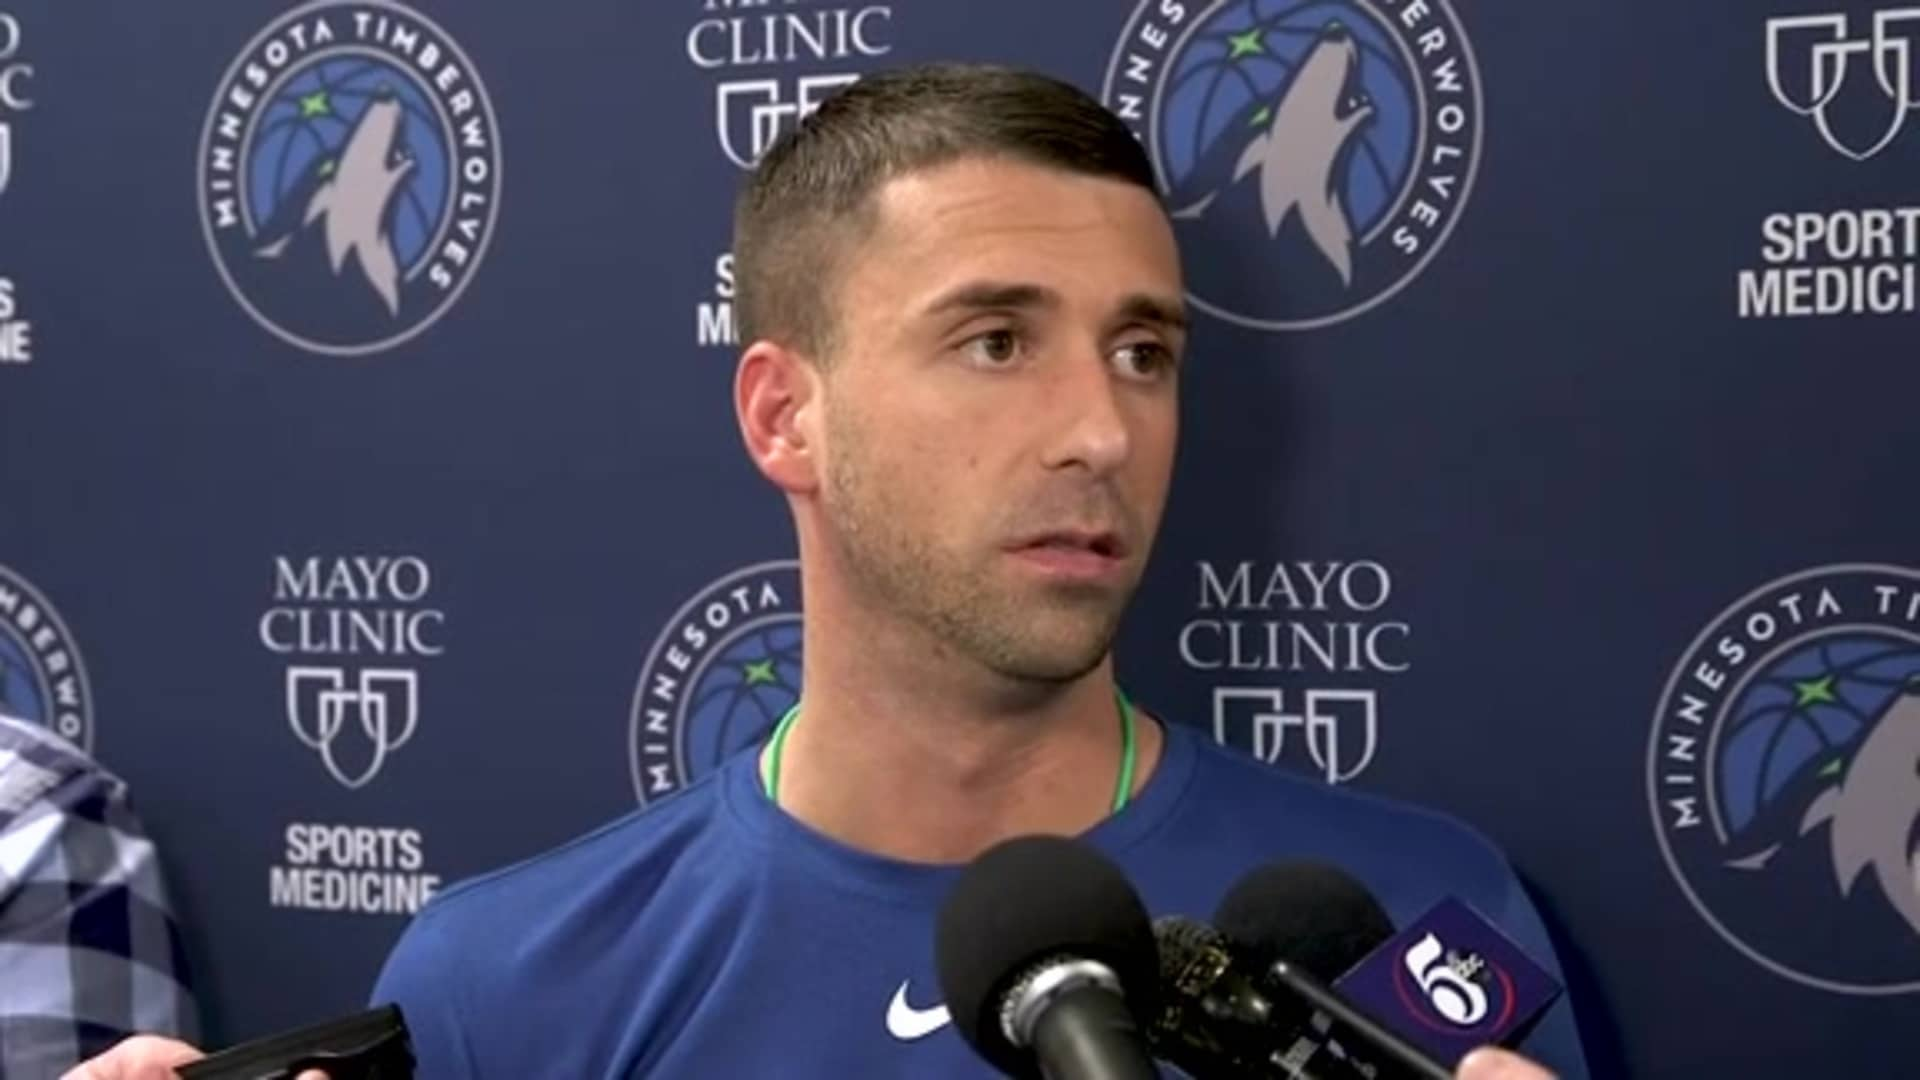 Timberwolves Coach Ryan Saunders On Preparing For Clippers (12.12.19)